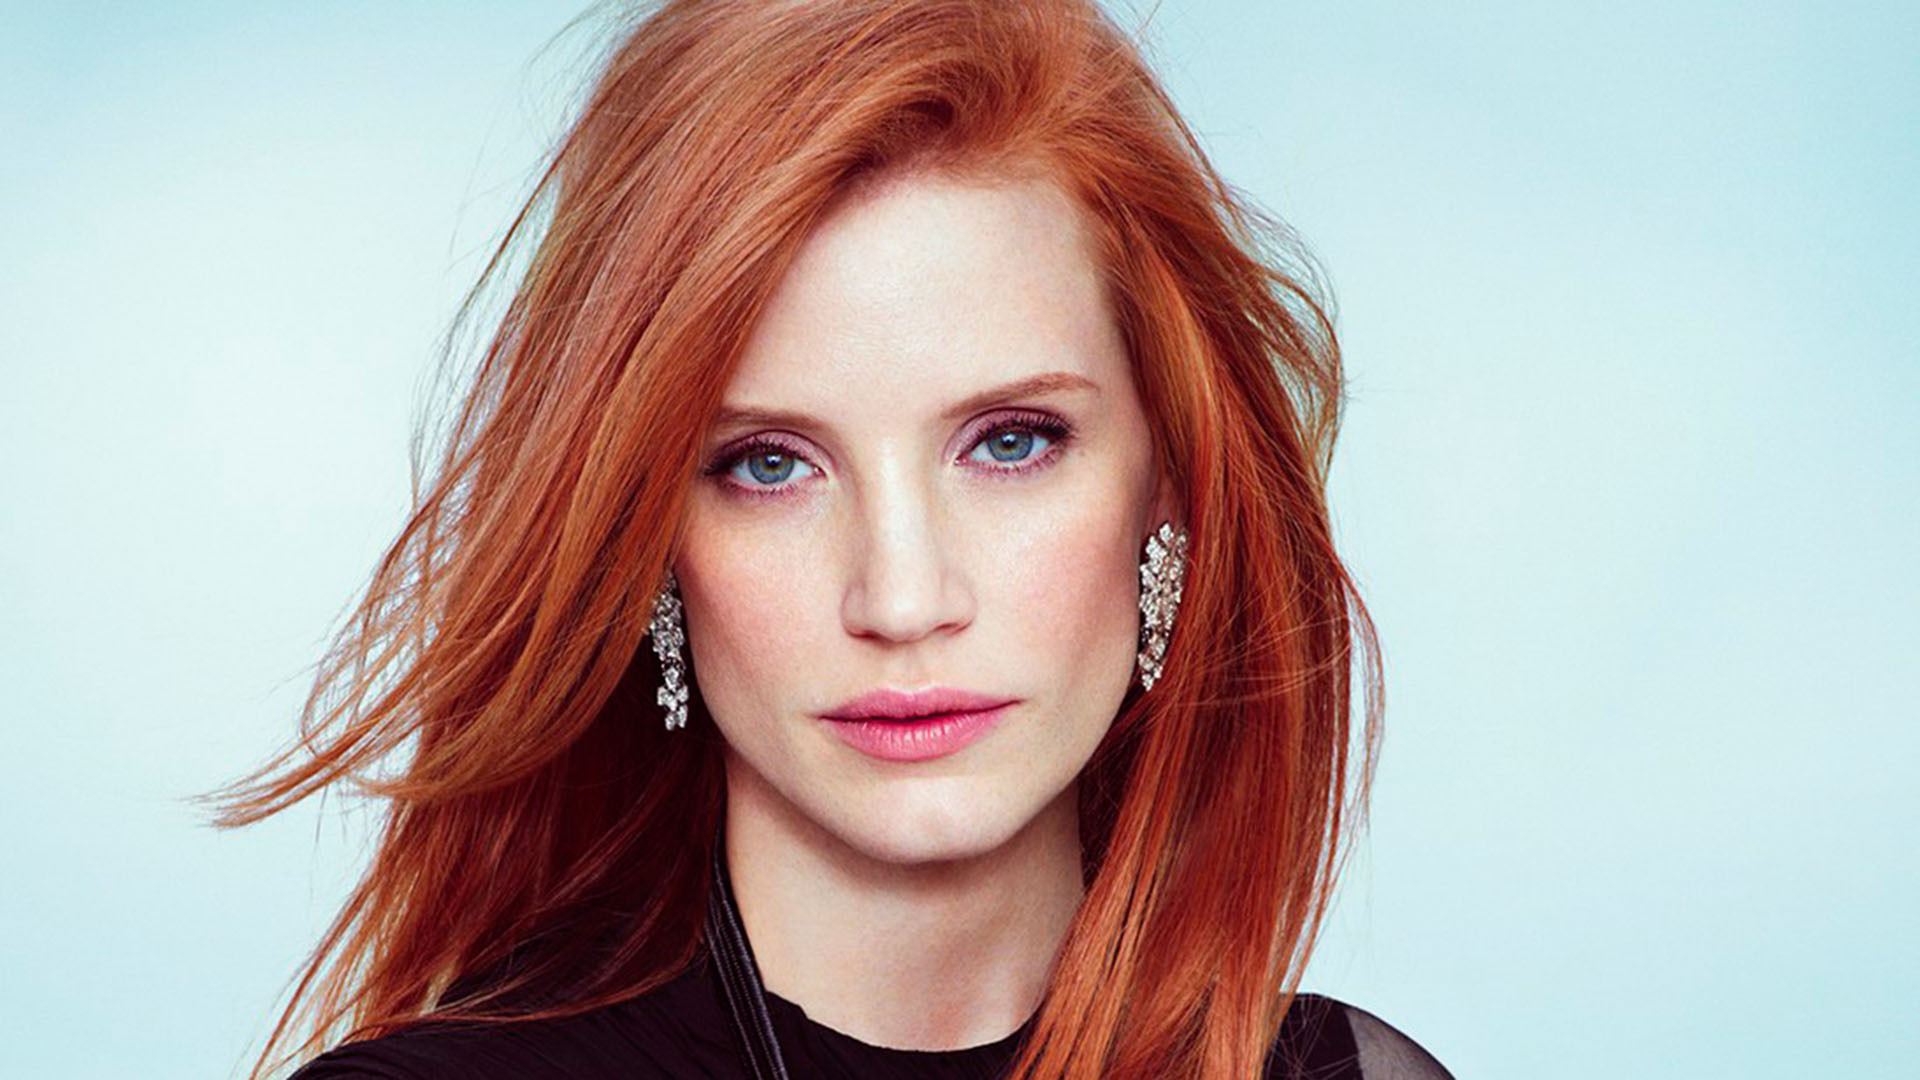 Jessica Chastain Wallpapers Images Photos Pictures Backgrounds Jessica Chastain